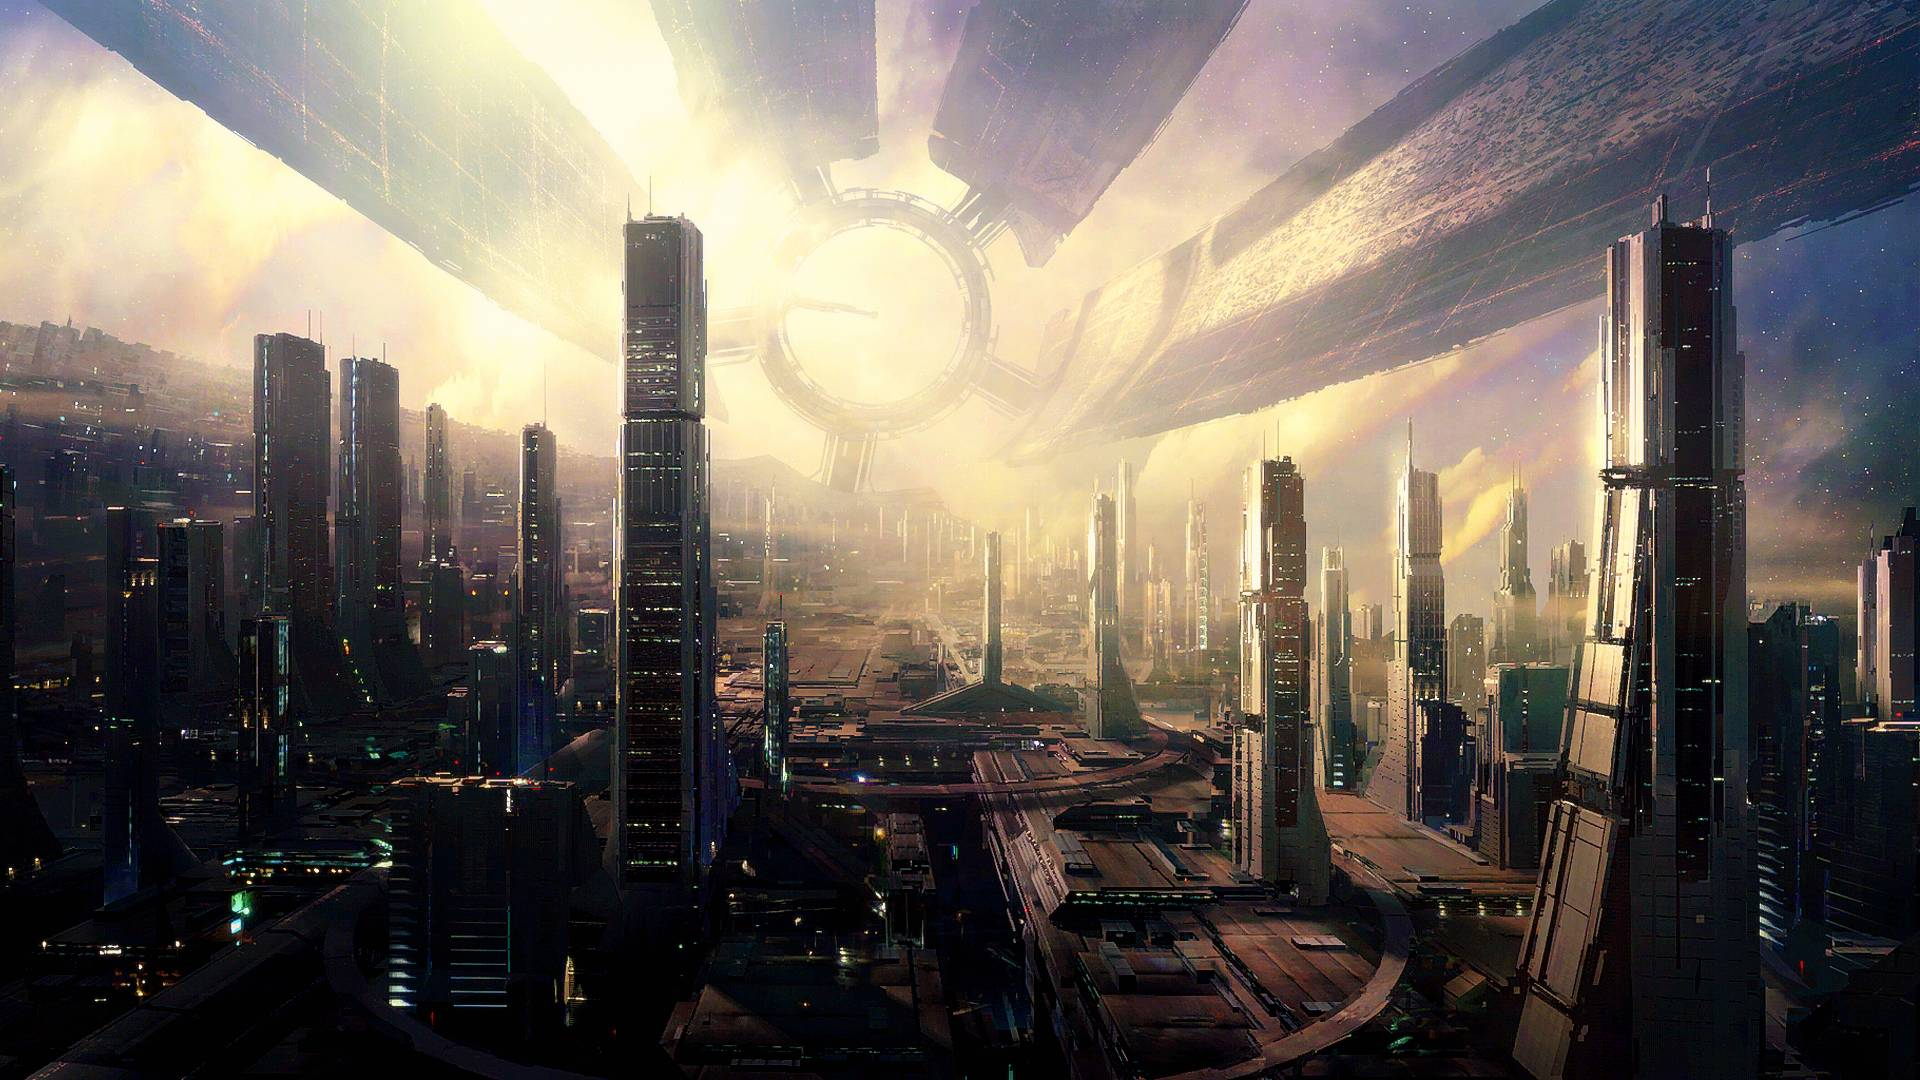 futuristic-city-wallpaper-6